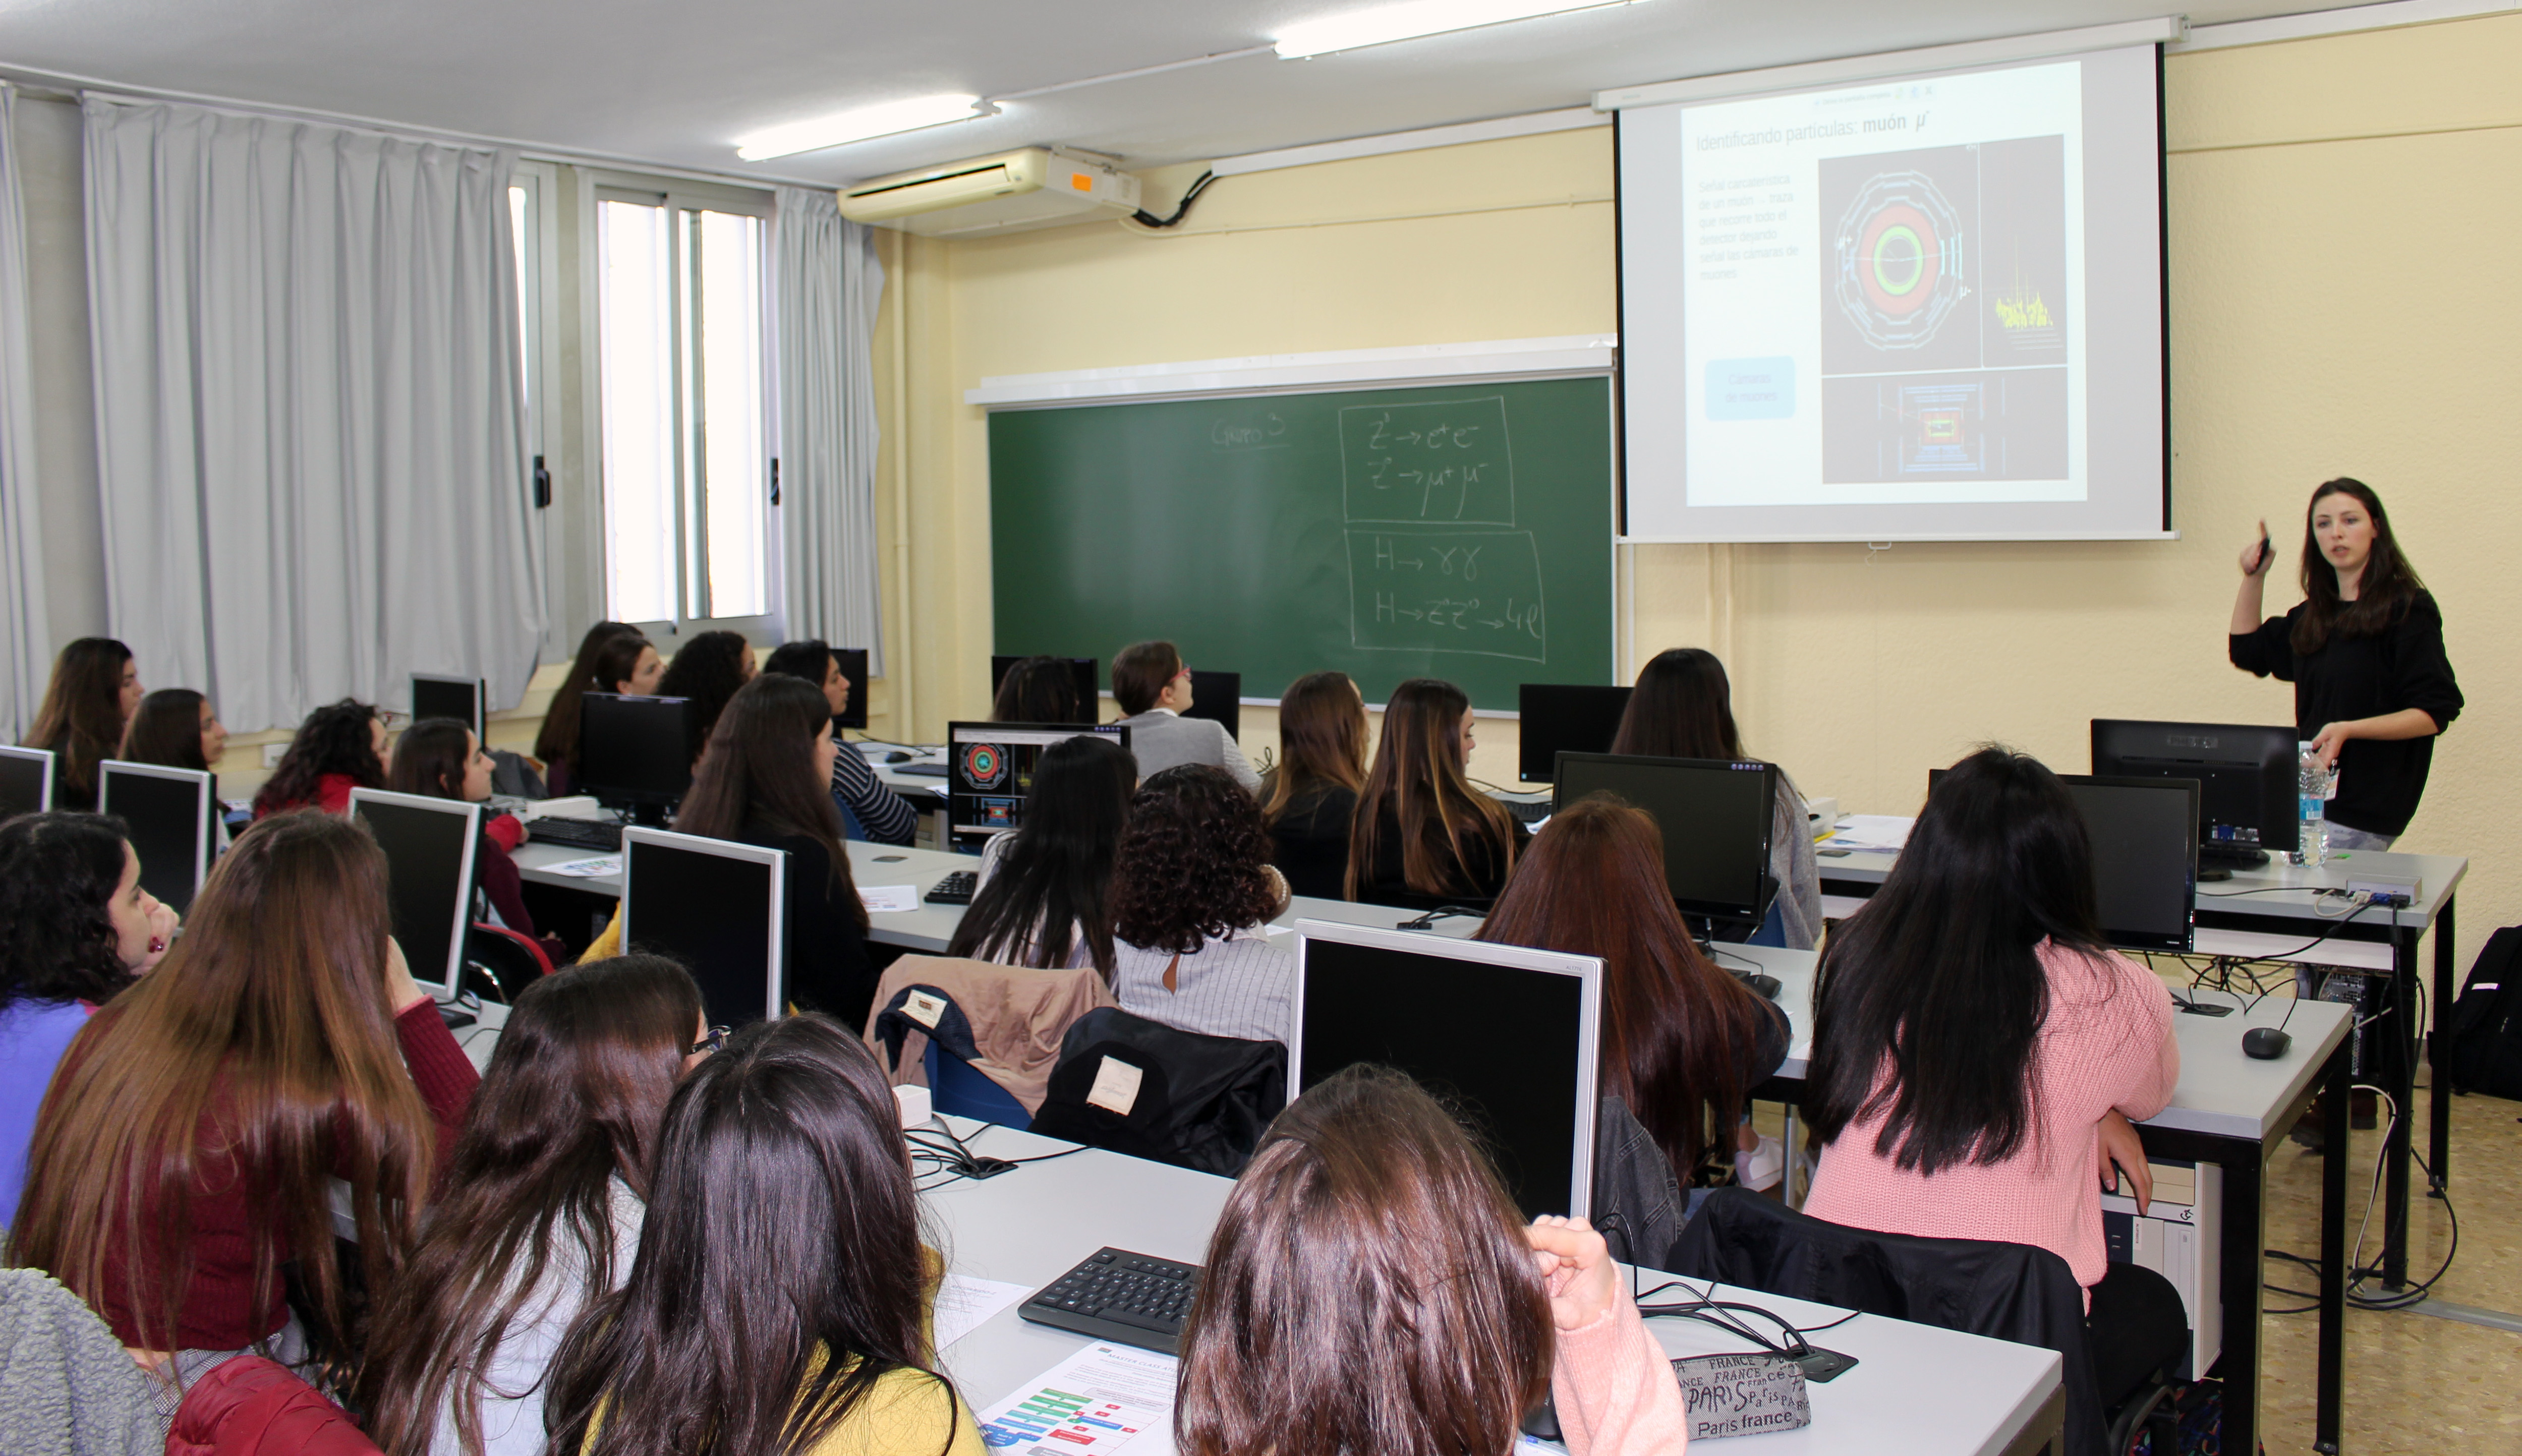 11 de febrero, Día Internacional de la Mujer y la Niña en la Ciencia, International Day of Women and Girls in Science, IFIC, Instituto de Física Corpuscular, masterclass, física de partículas, particle physics,